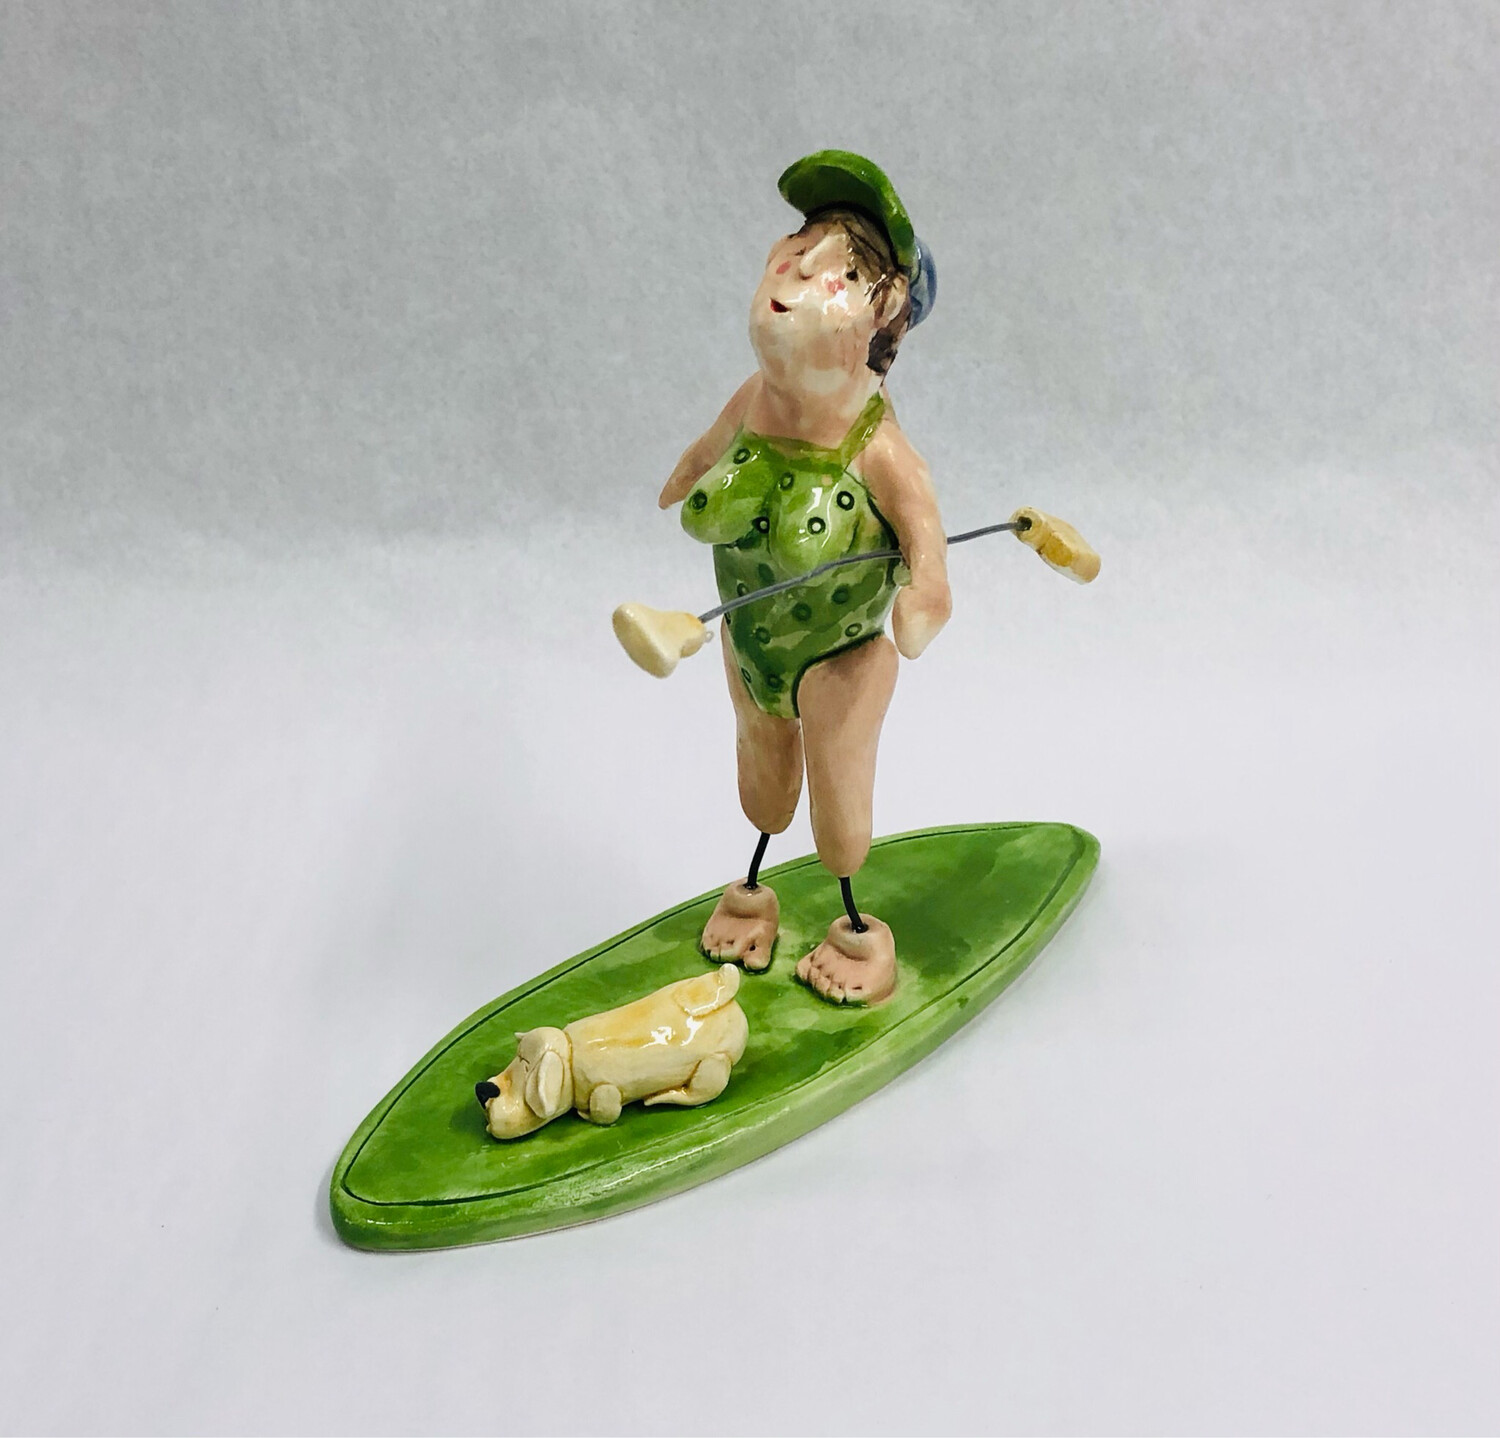 Green Lady Stand Up Paddle Boarder - Clayton Dickson